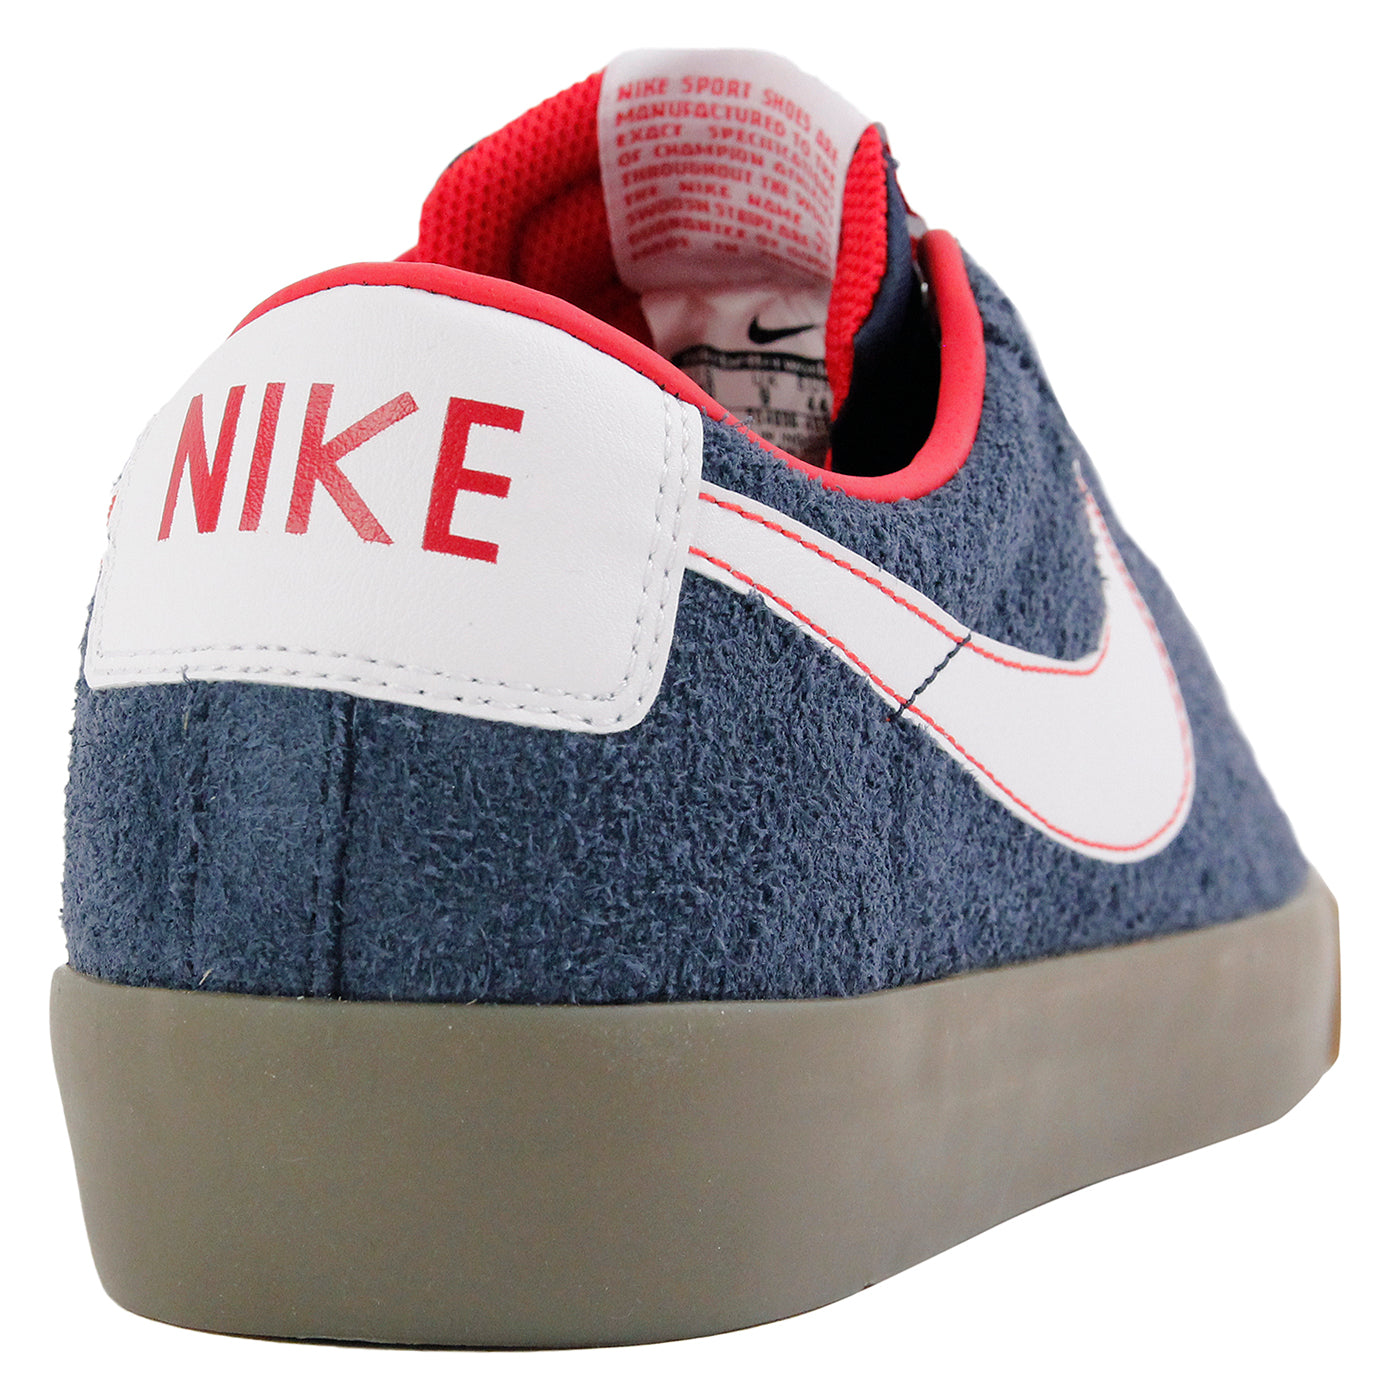 670264a1bb79 Nike SB Blazer Low Grant Taylor Shoes - Obsidian   White-University Red-Gum  Light Brown. Size Charts